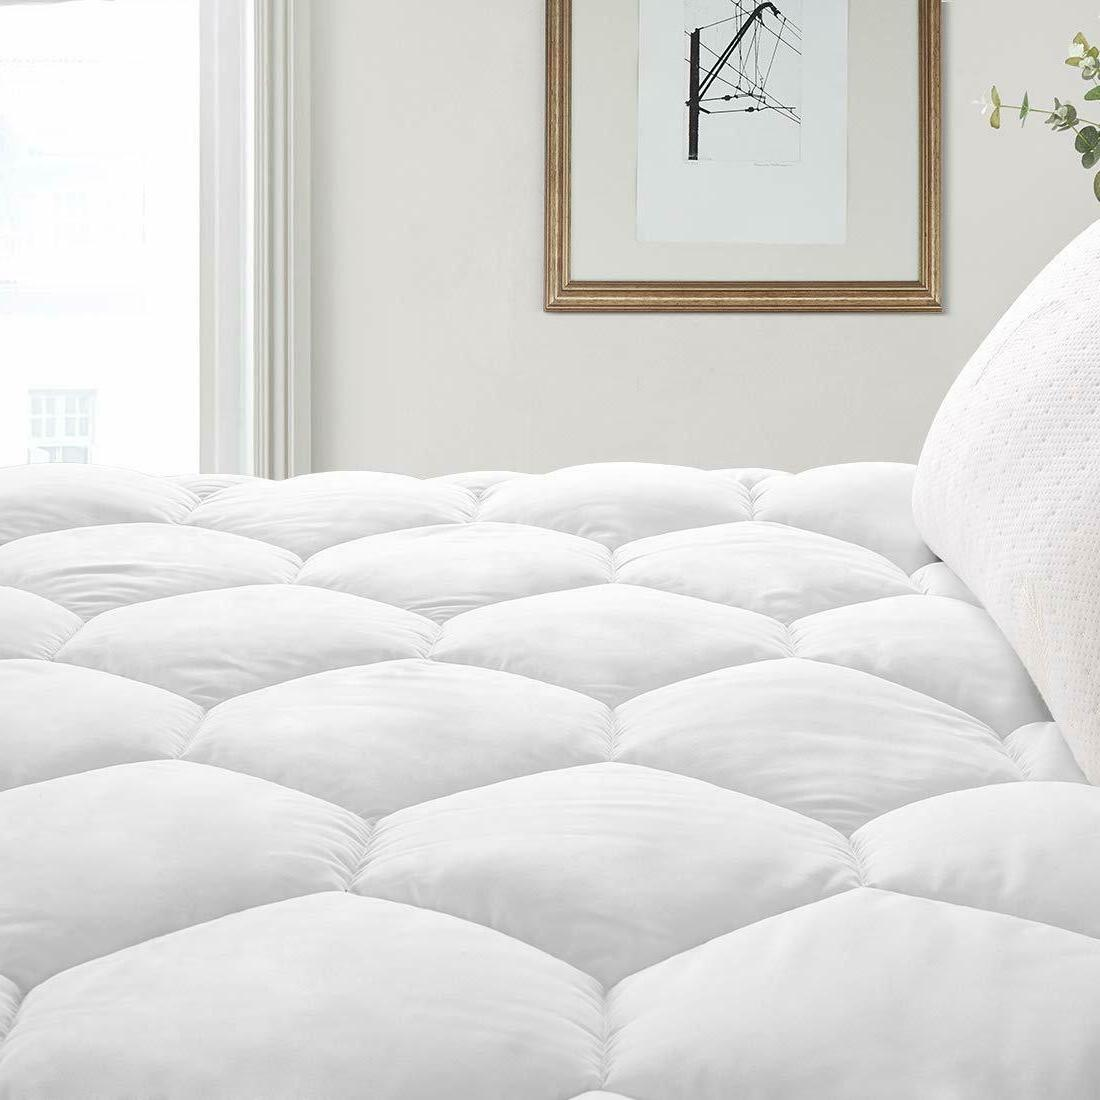 Quilted Fitted Queen Mattress Pad Cover